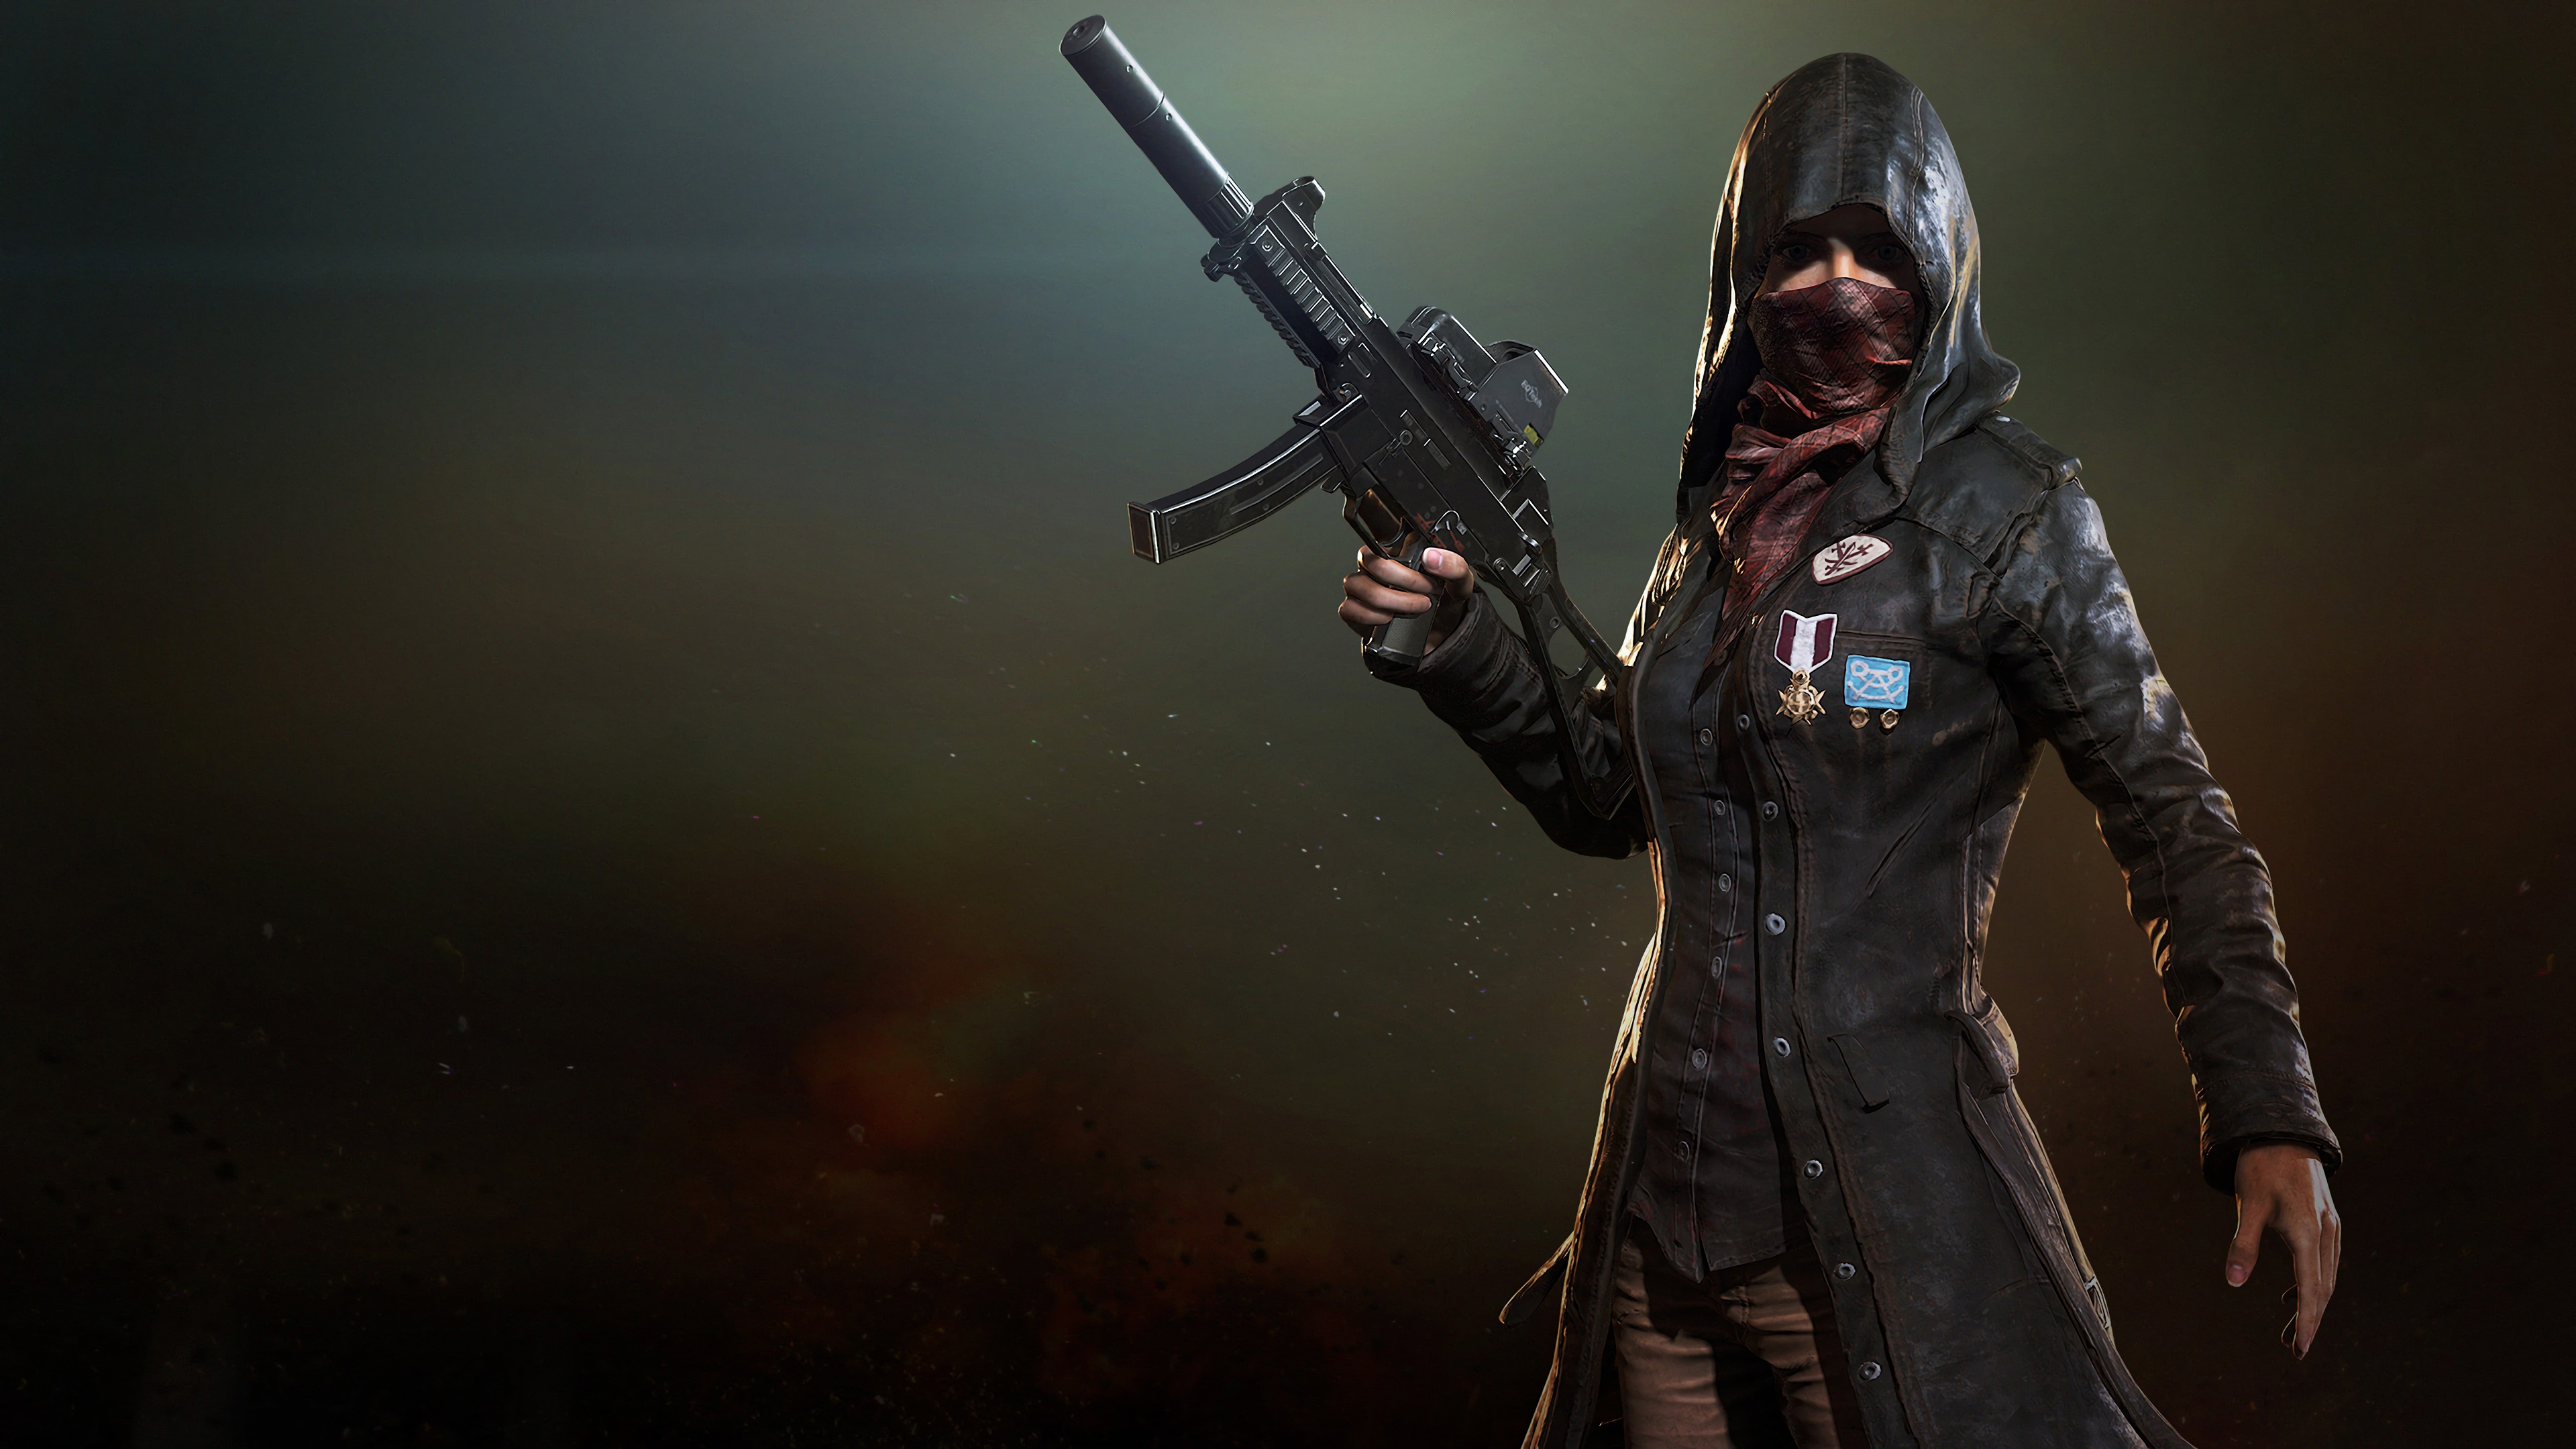 Pubg Trenchcoat Girl 4k, HD Games, 4k Wallpapers, Images